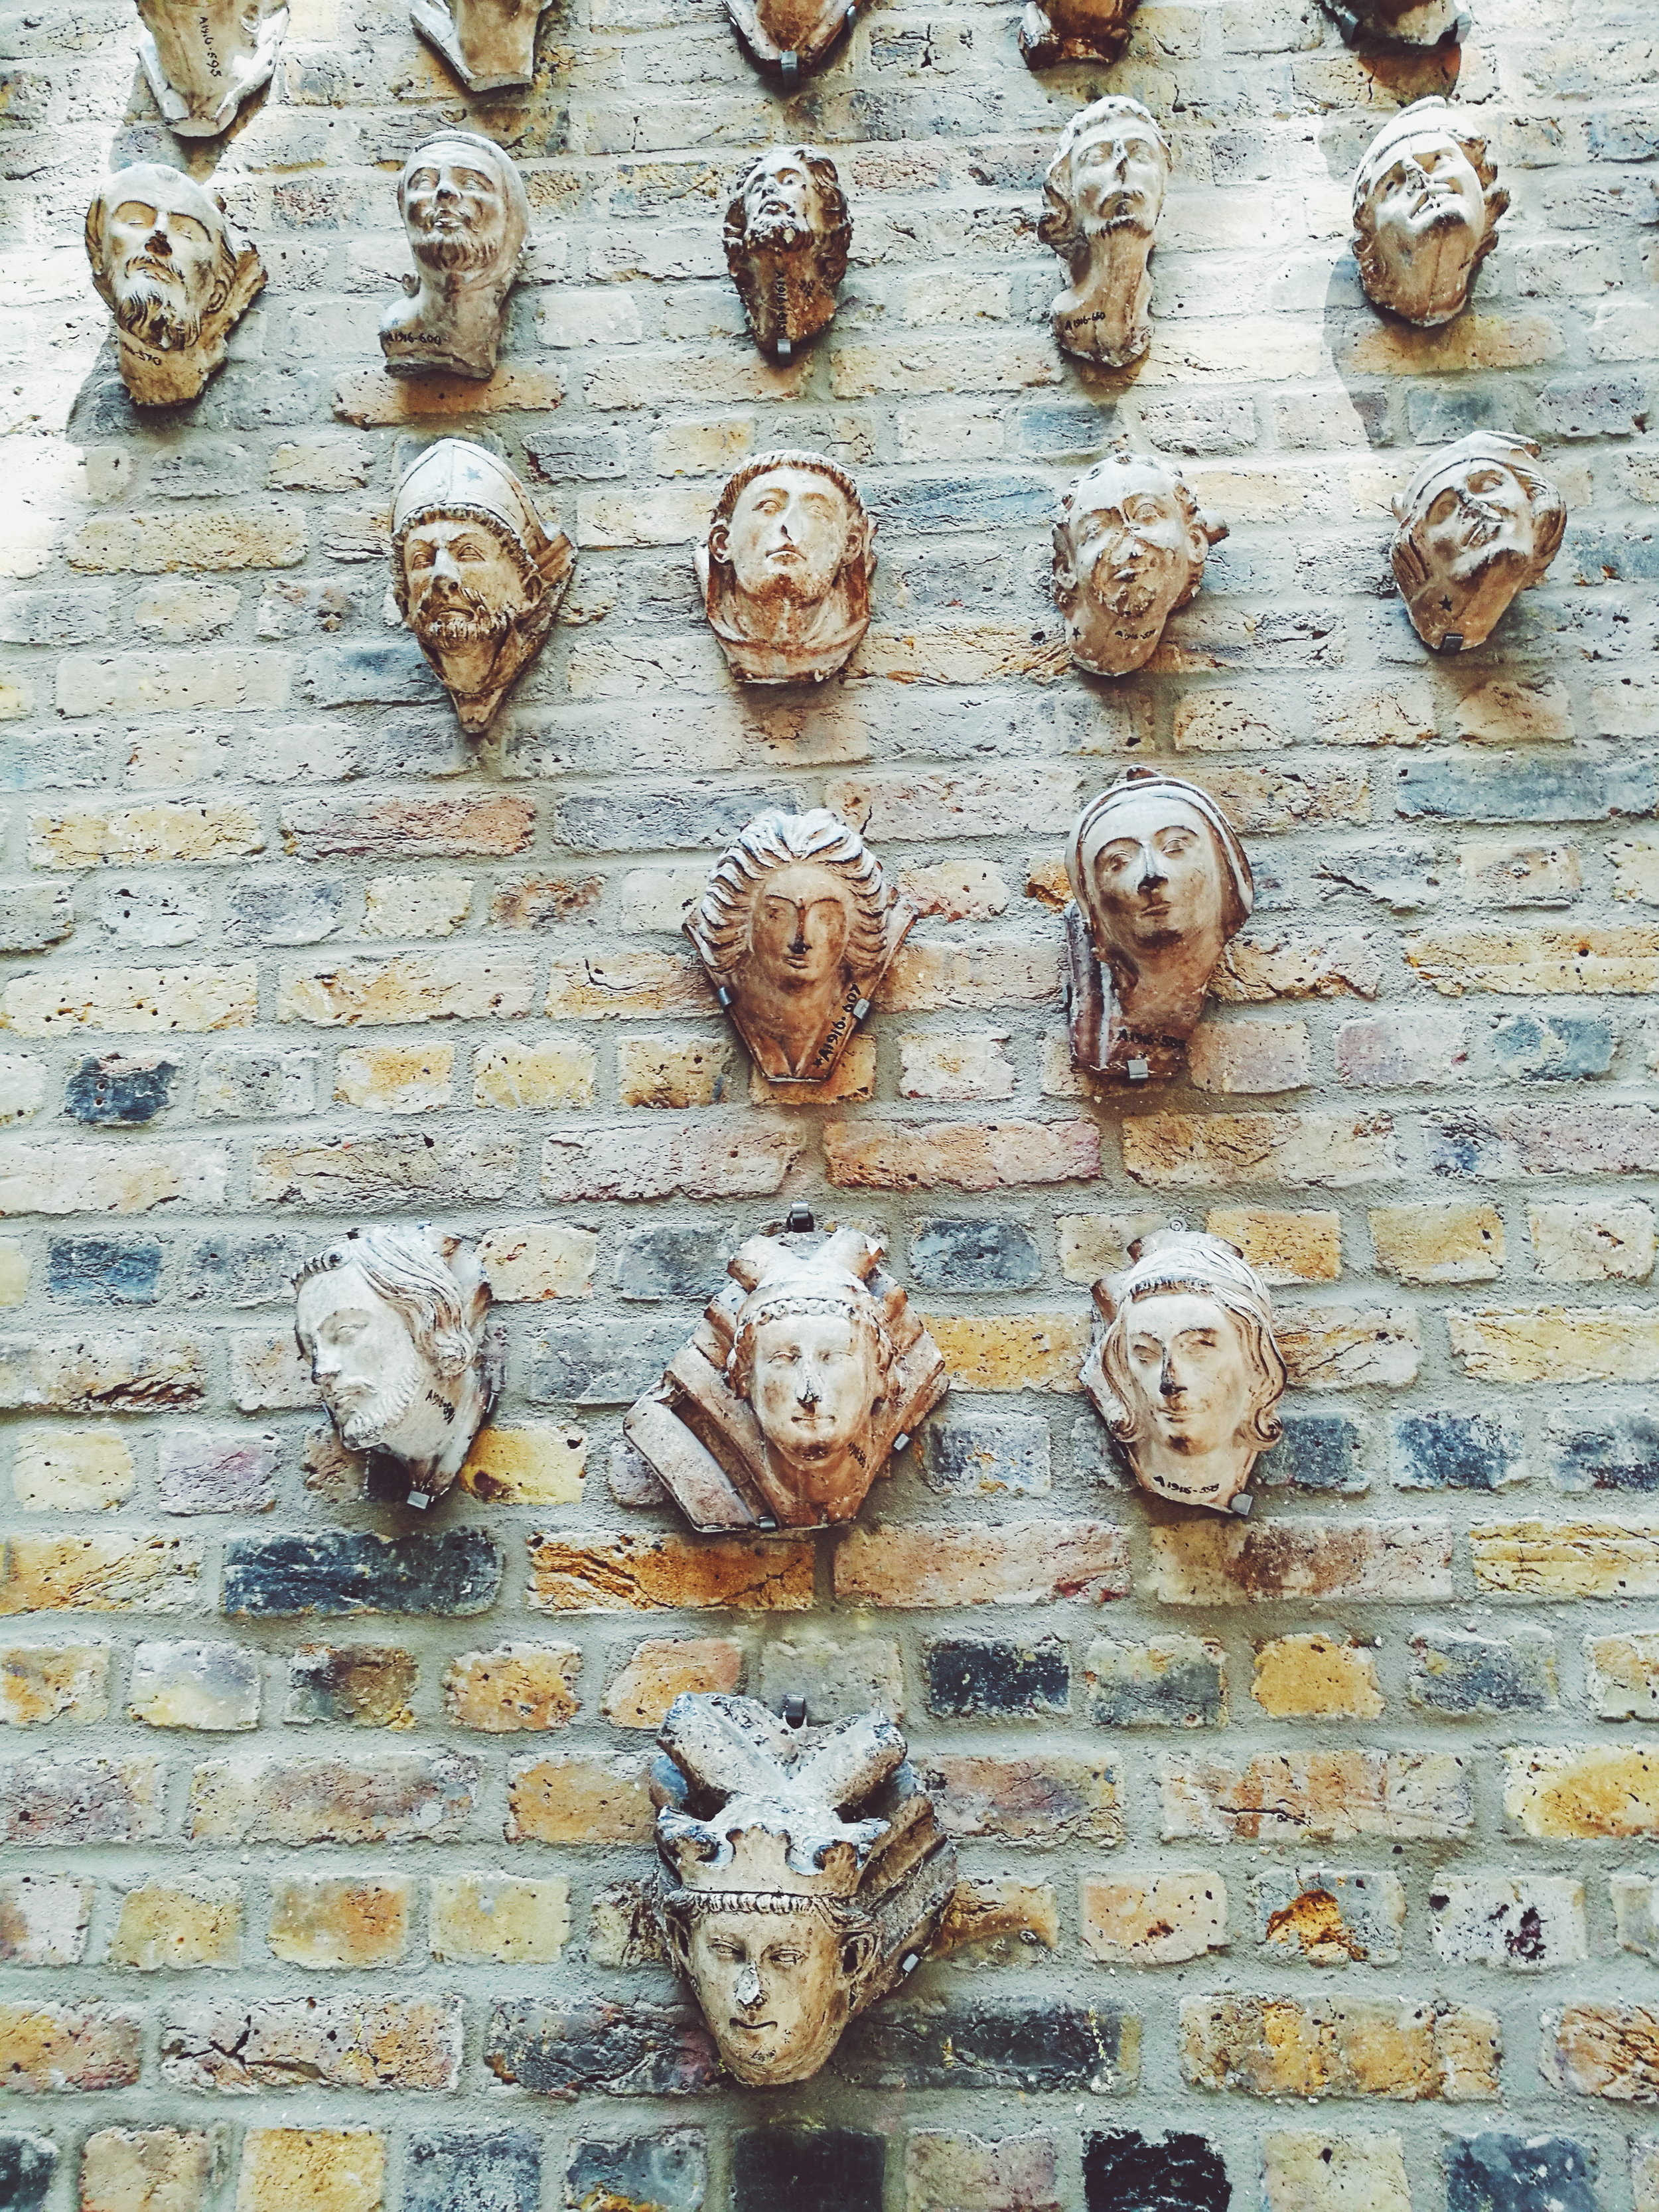 The wall of heads.